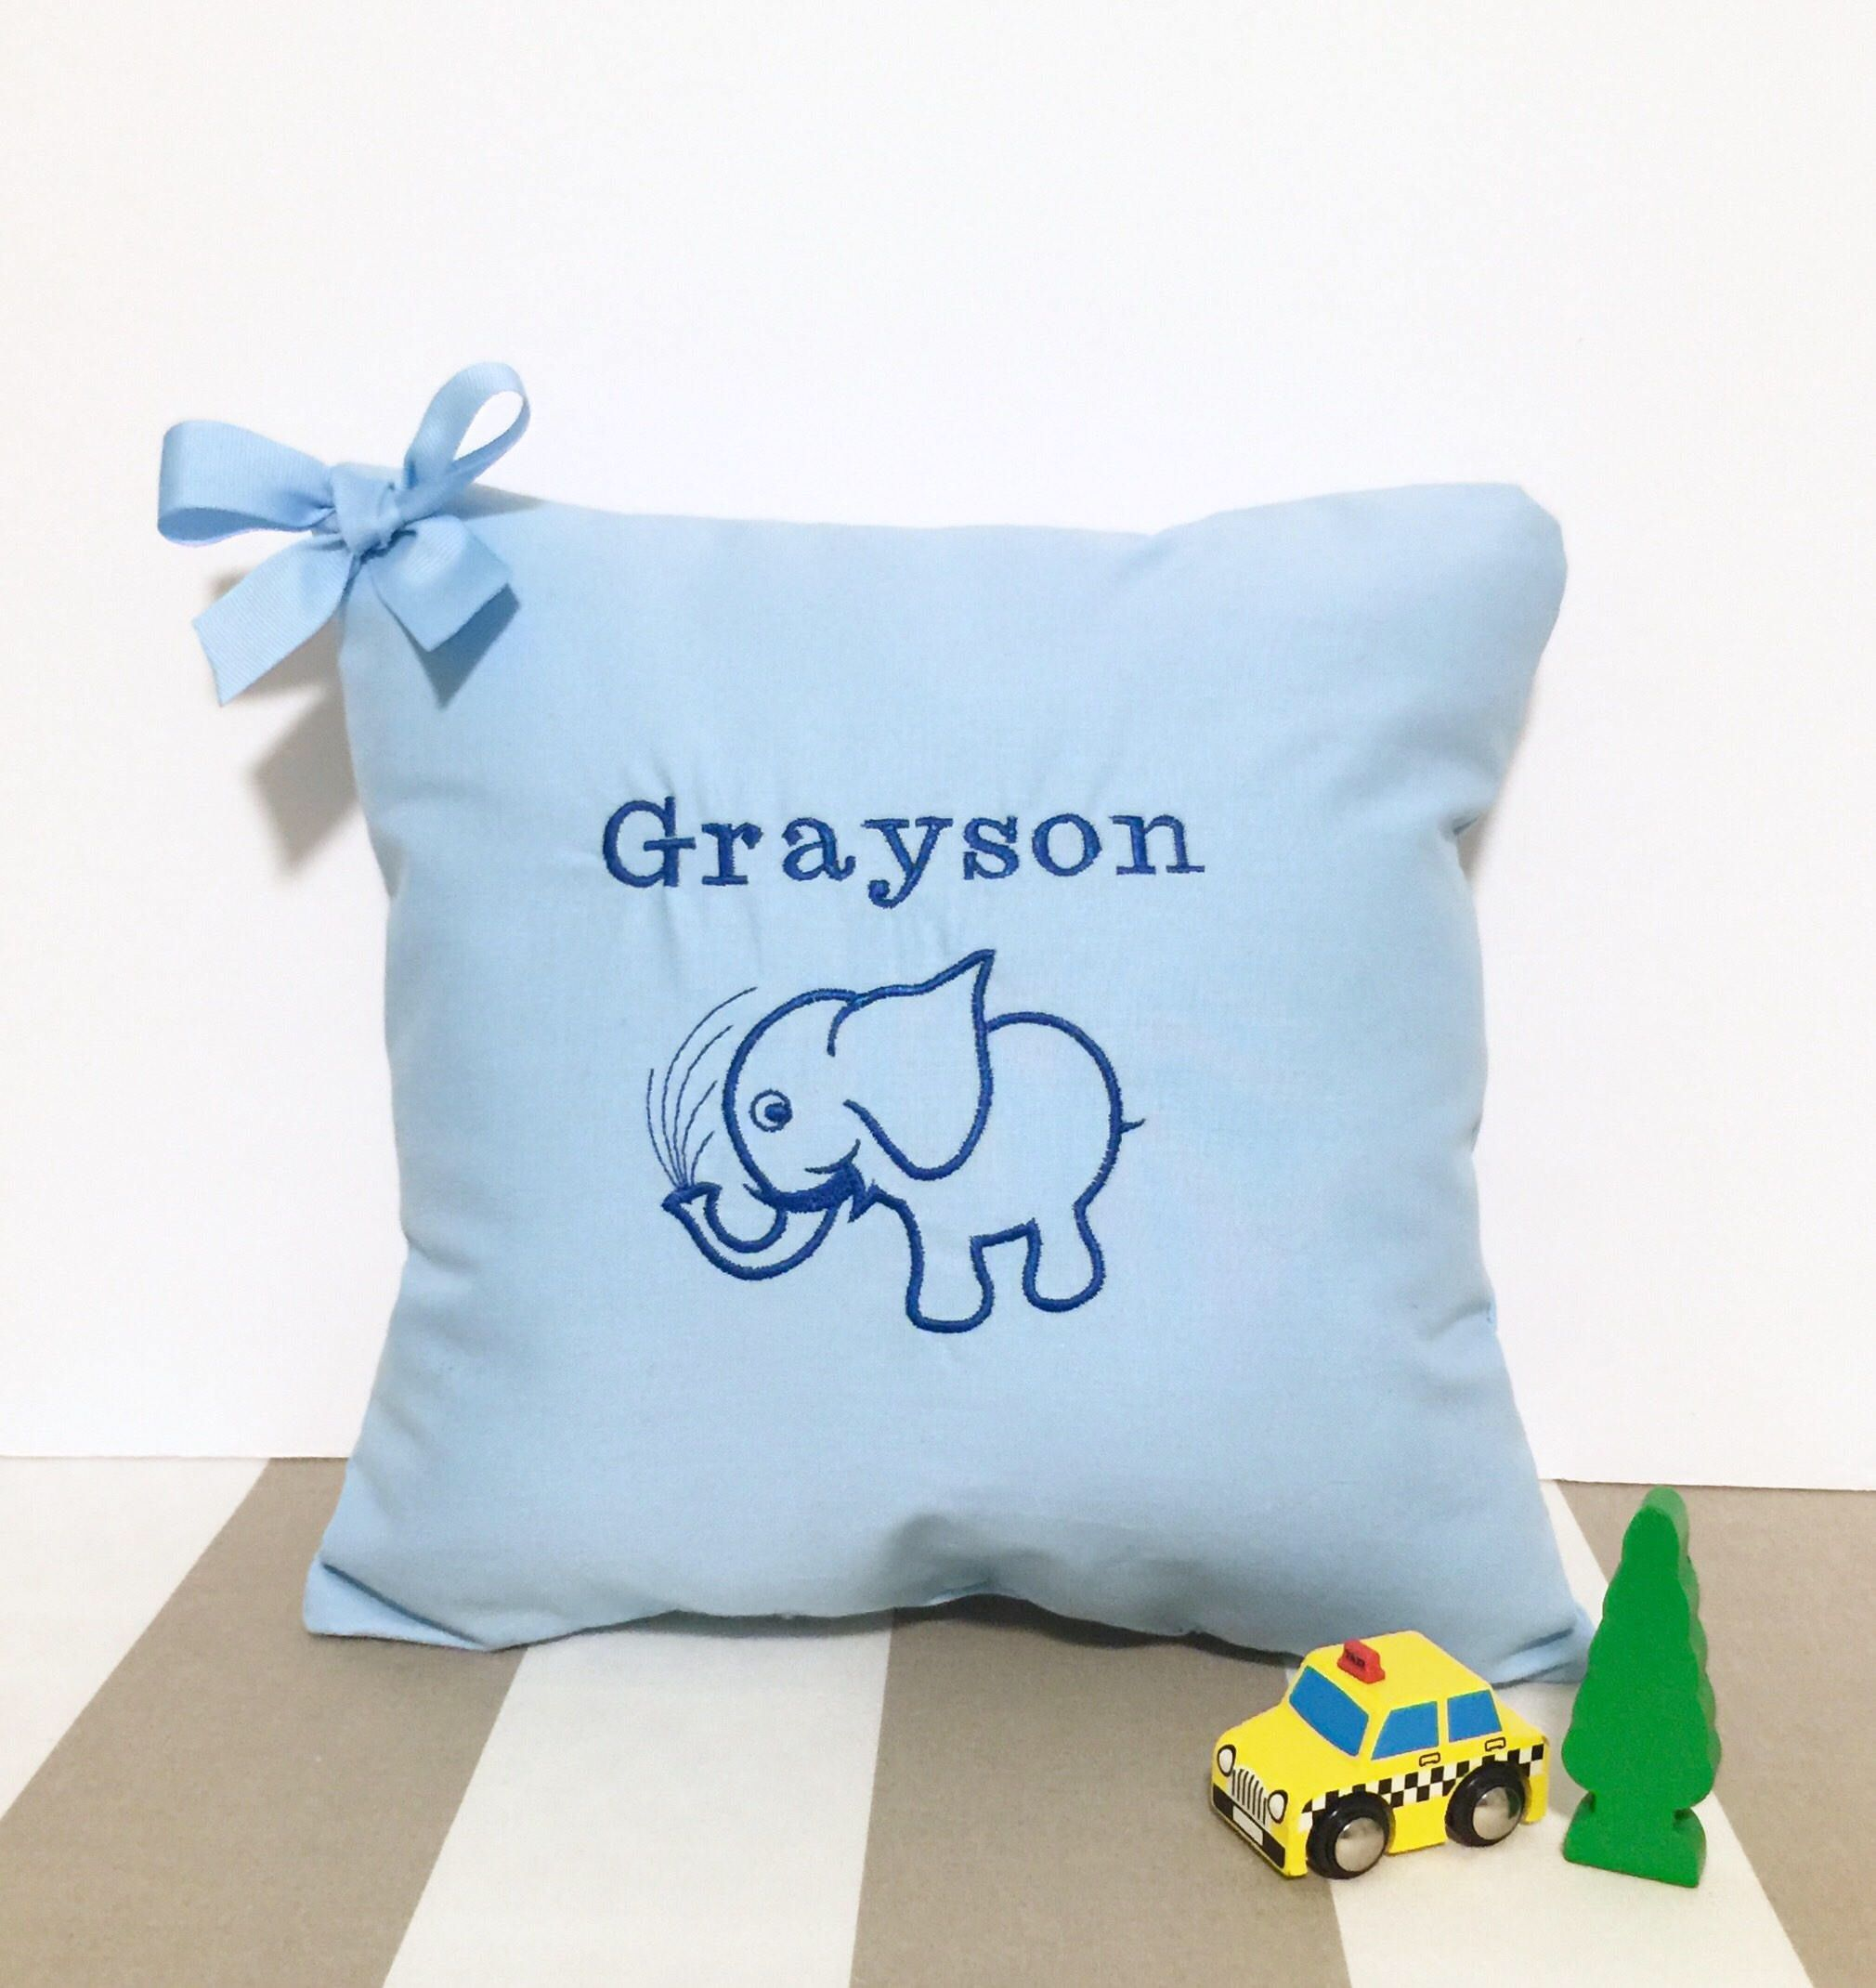 Personalized baby pillow boy elephant baby gift baby blue pillow personalized baby pillow boy elephant baby gift baby blue pillow elephant pillow elephant nursery decor boy baby gift boy negle Gallery